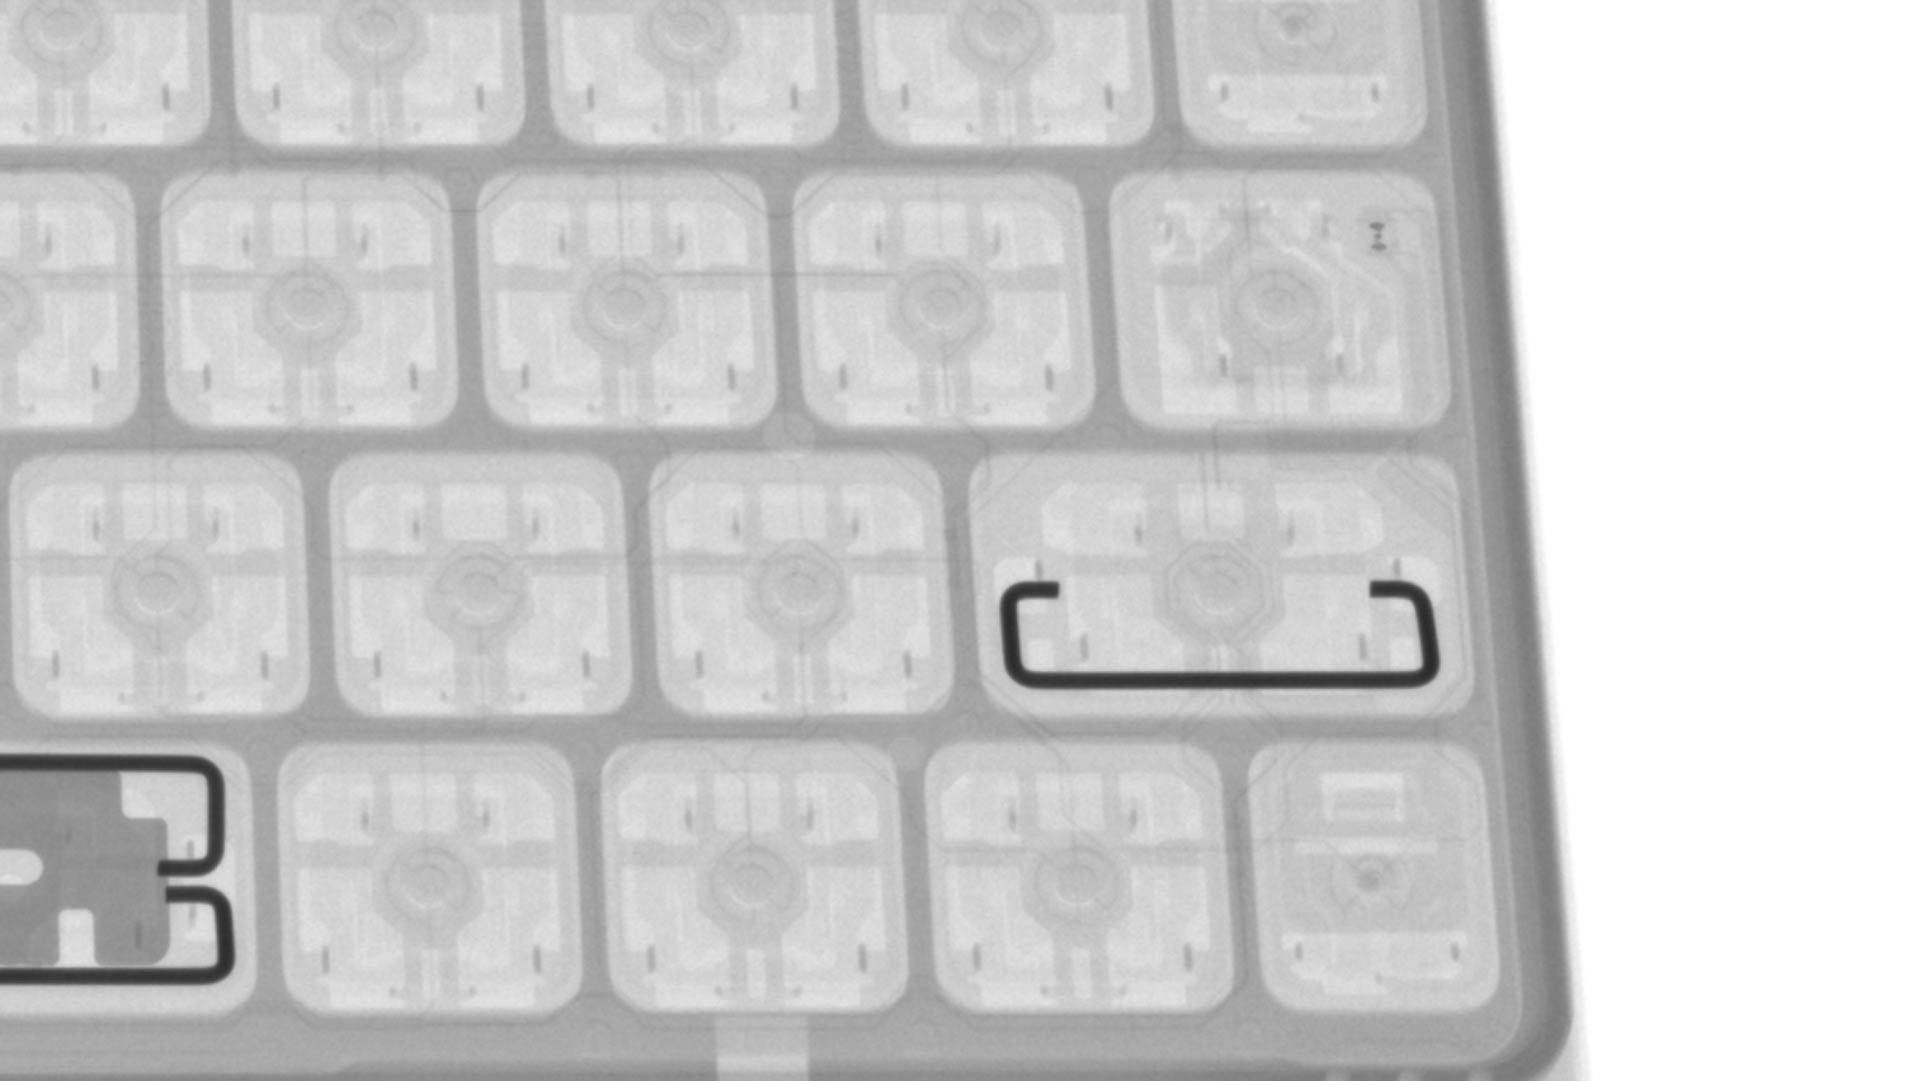 Scissor switches on the iPad Pro Magic Keyboard